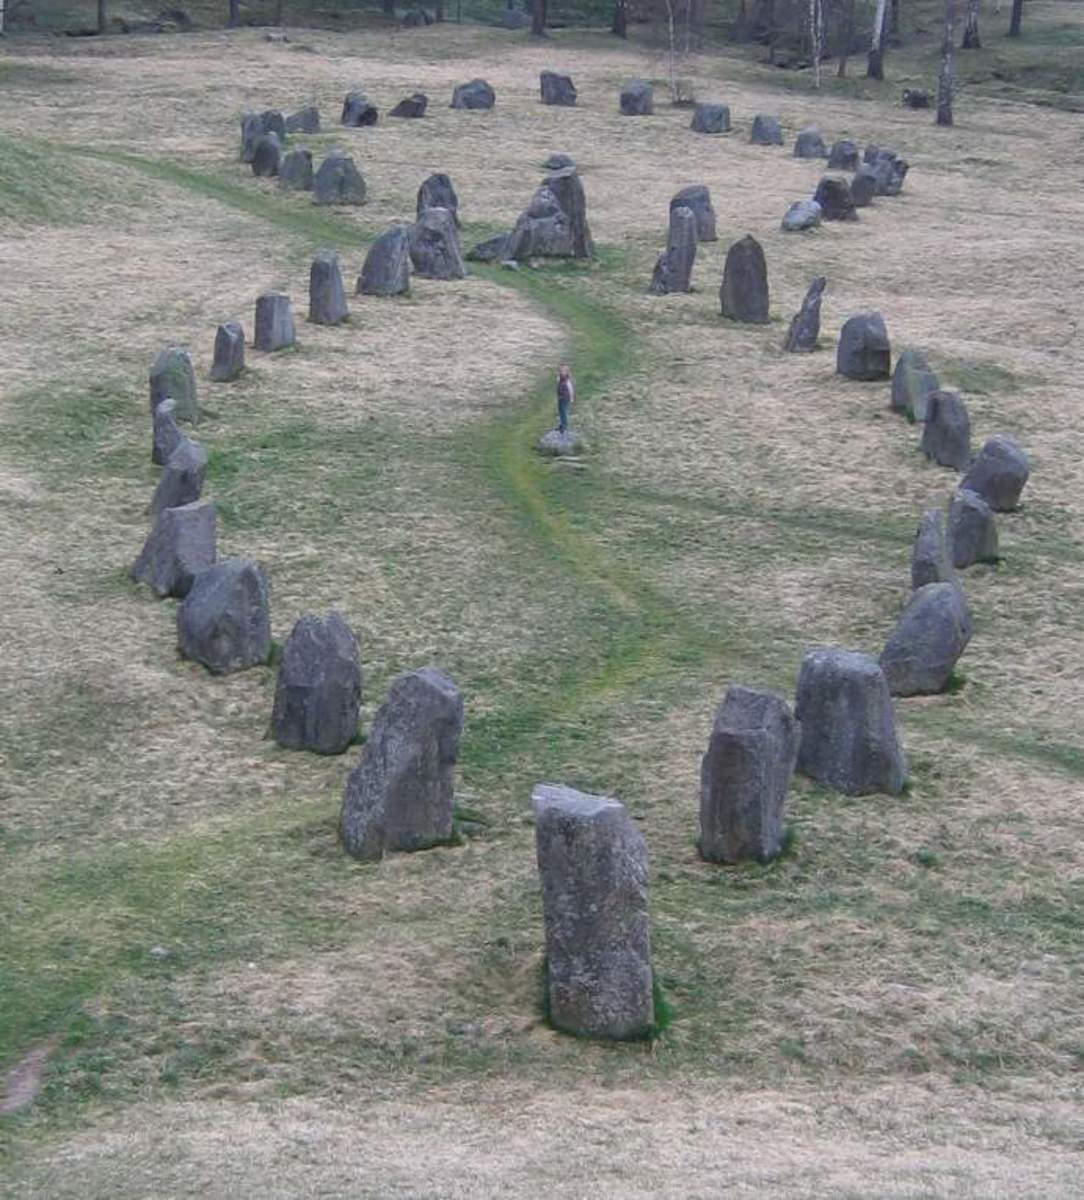 The two greatest stone ships at Anund's barrow in Sweden.